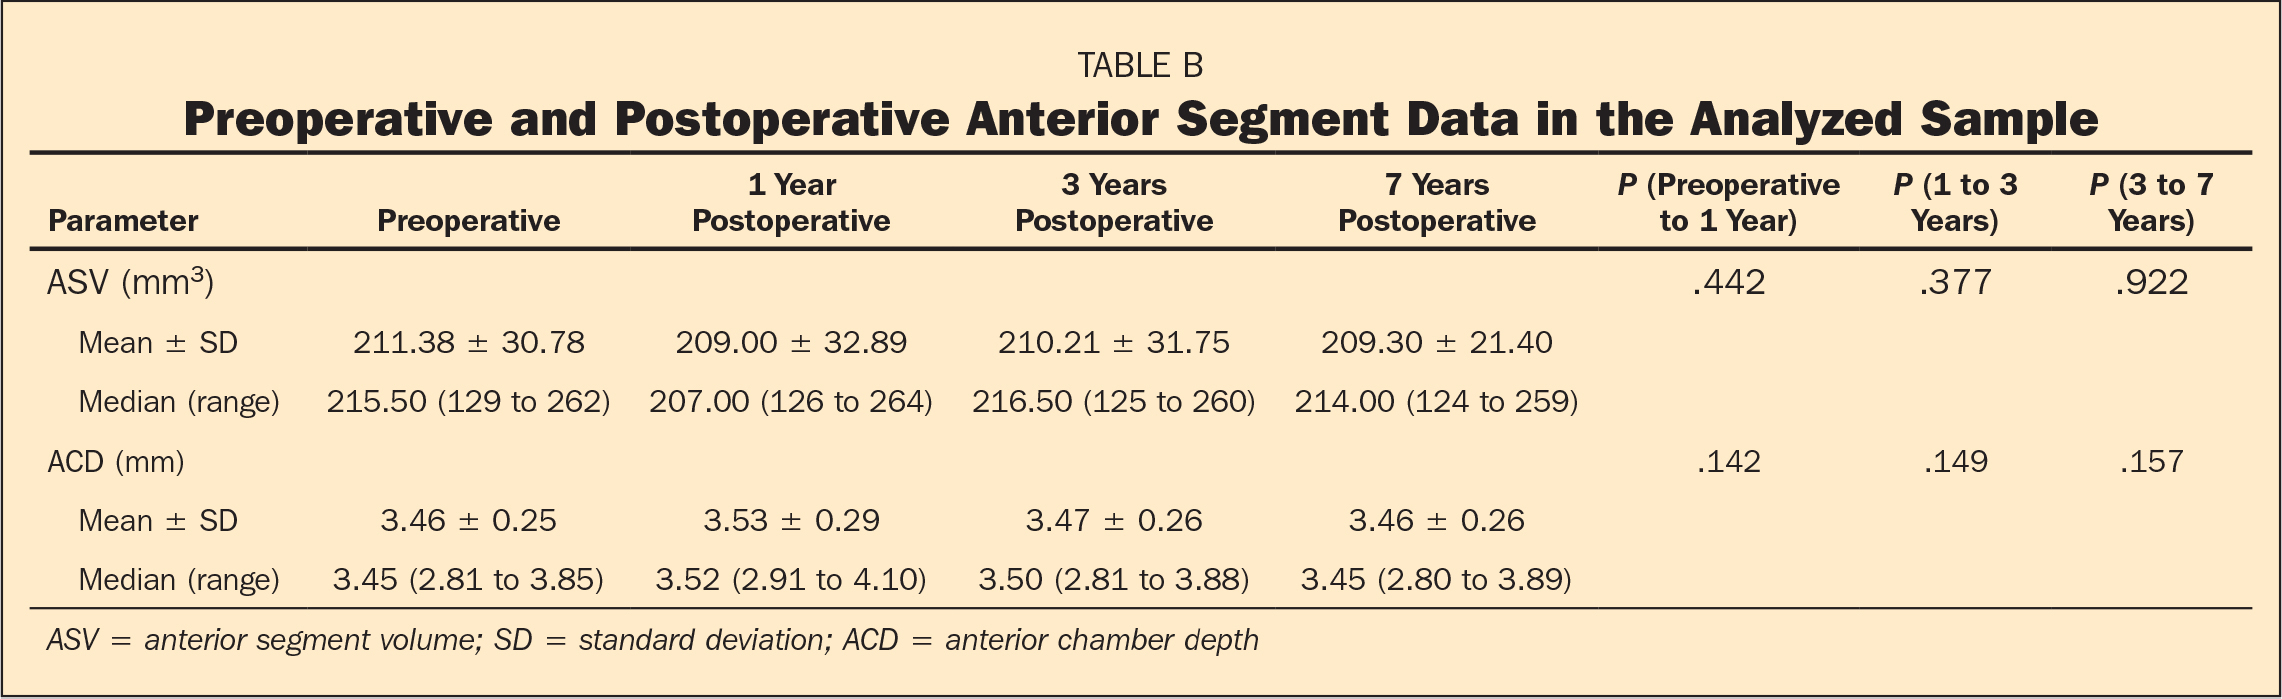 Preoperative and Postoperative Anterior Segment Data in the Analyzed Sample